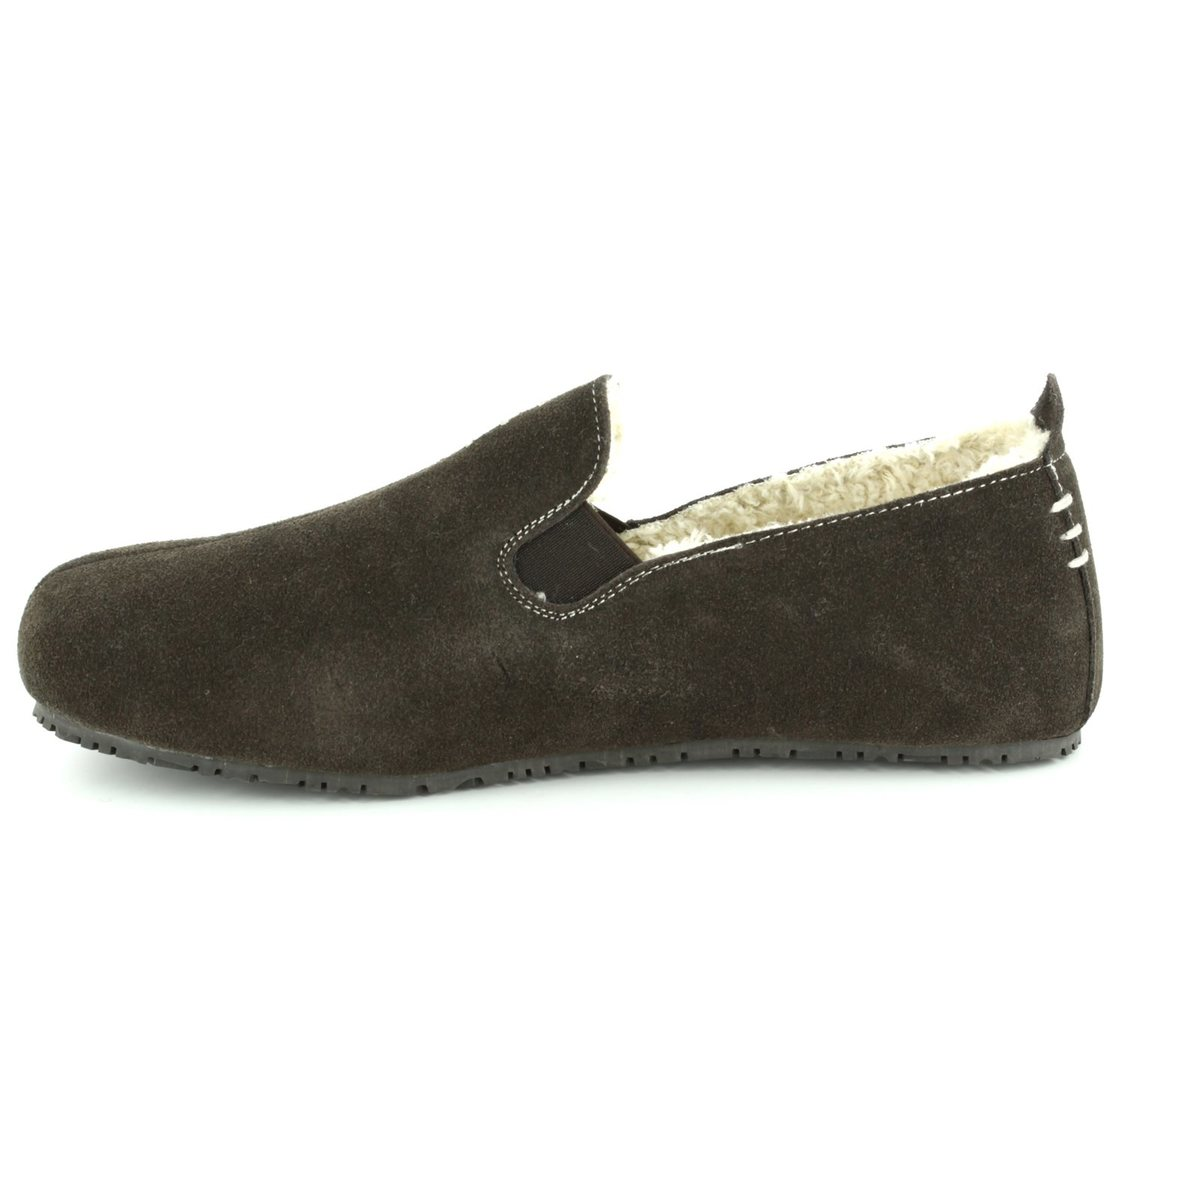 77844e0095d Clarks Kite Falcon G Fit Brown suede mens slippers online